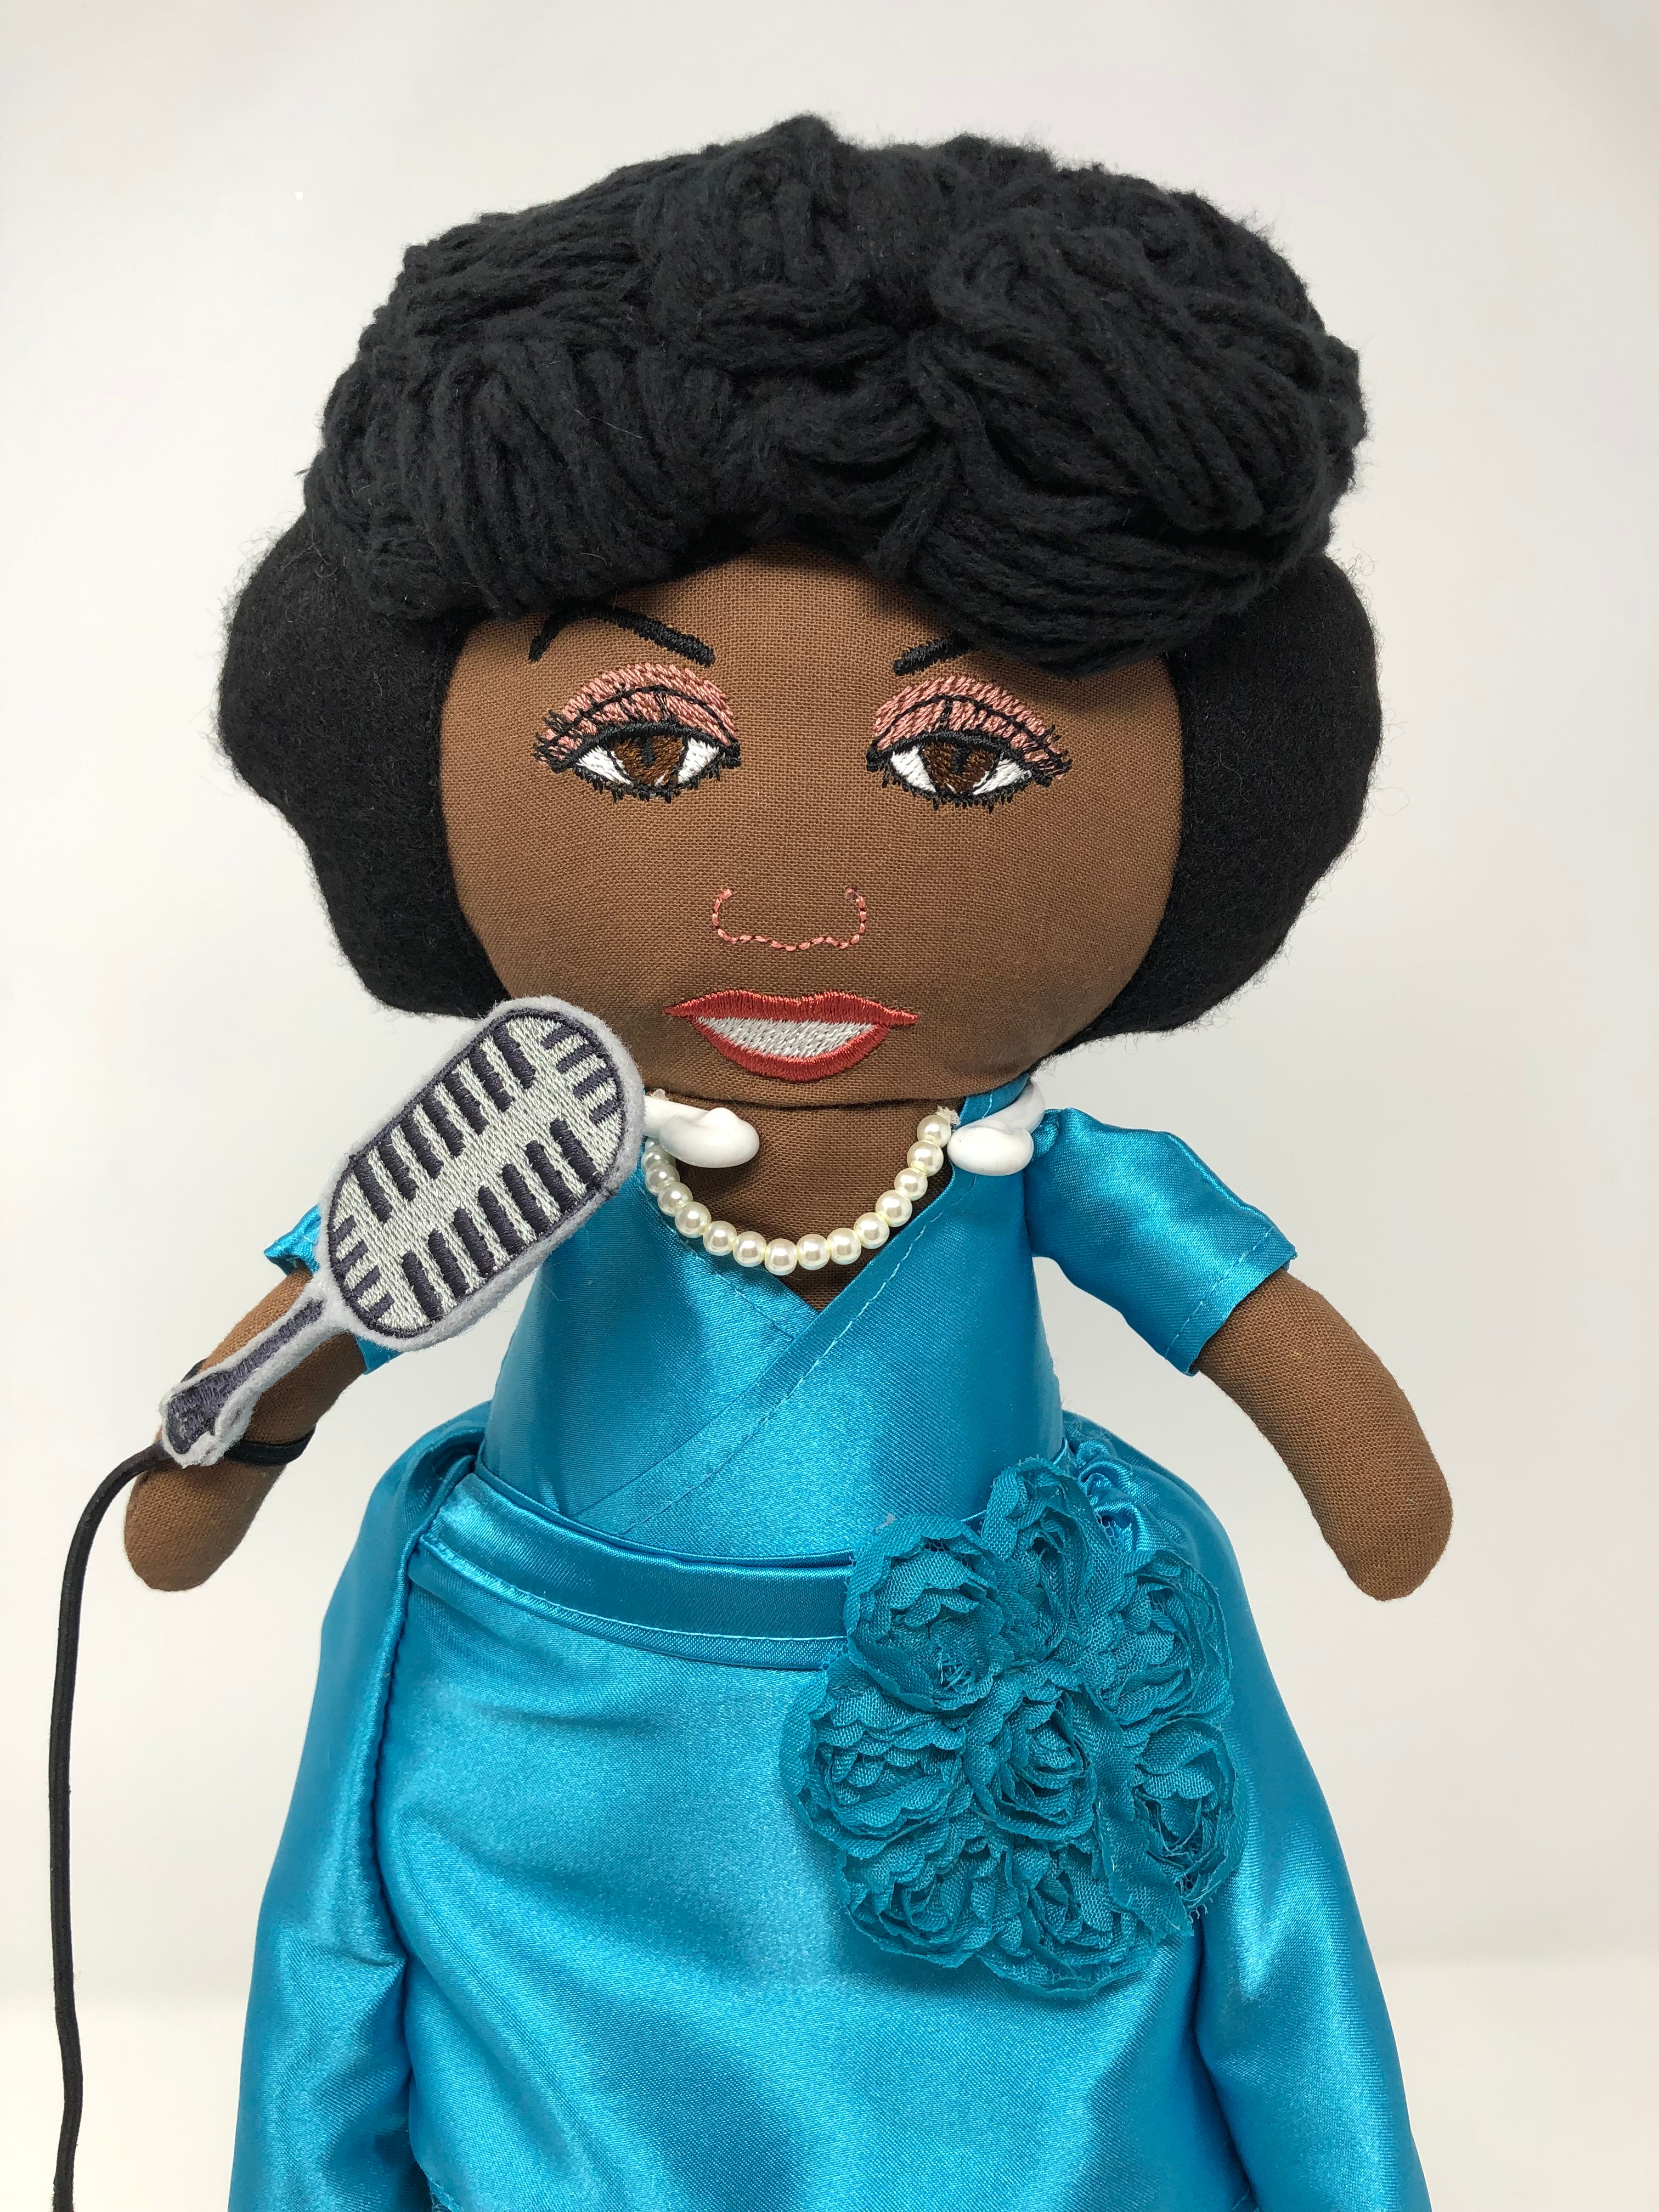 The Jazz singer- Ella Fitzgerald-inspired soft doll with machine embroidery